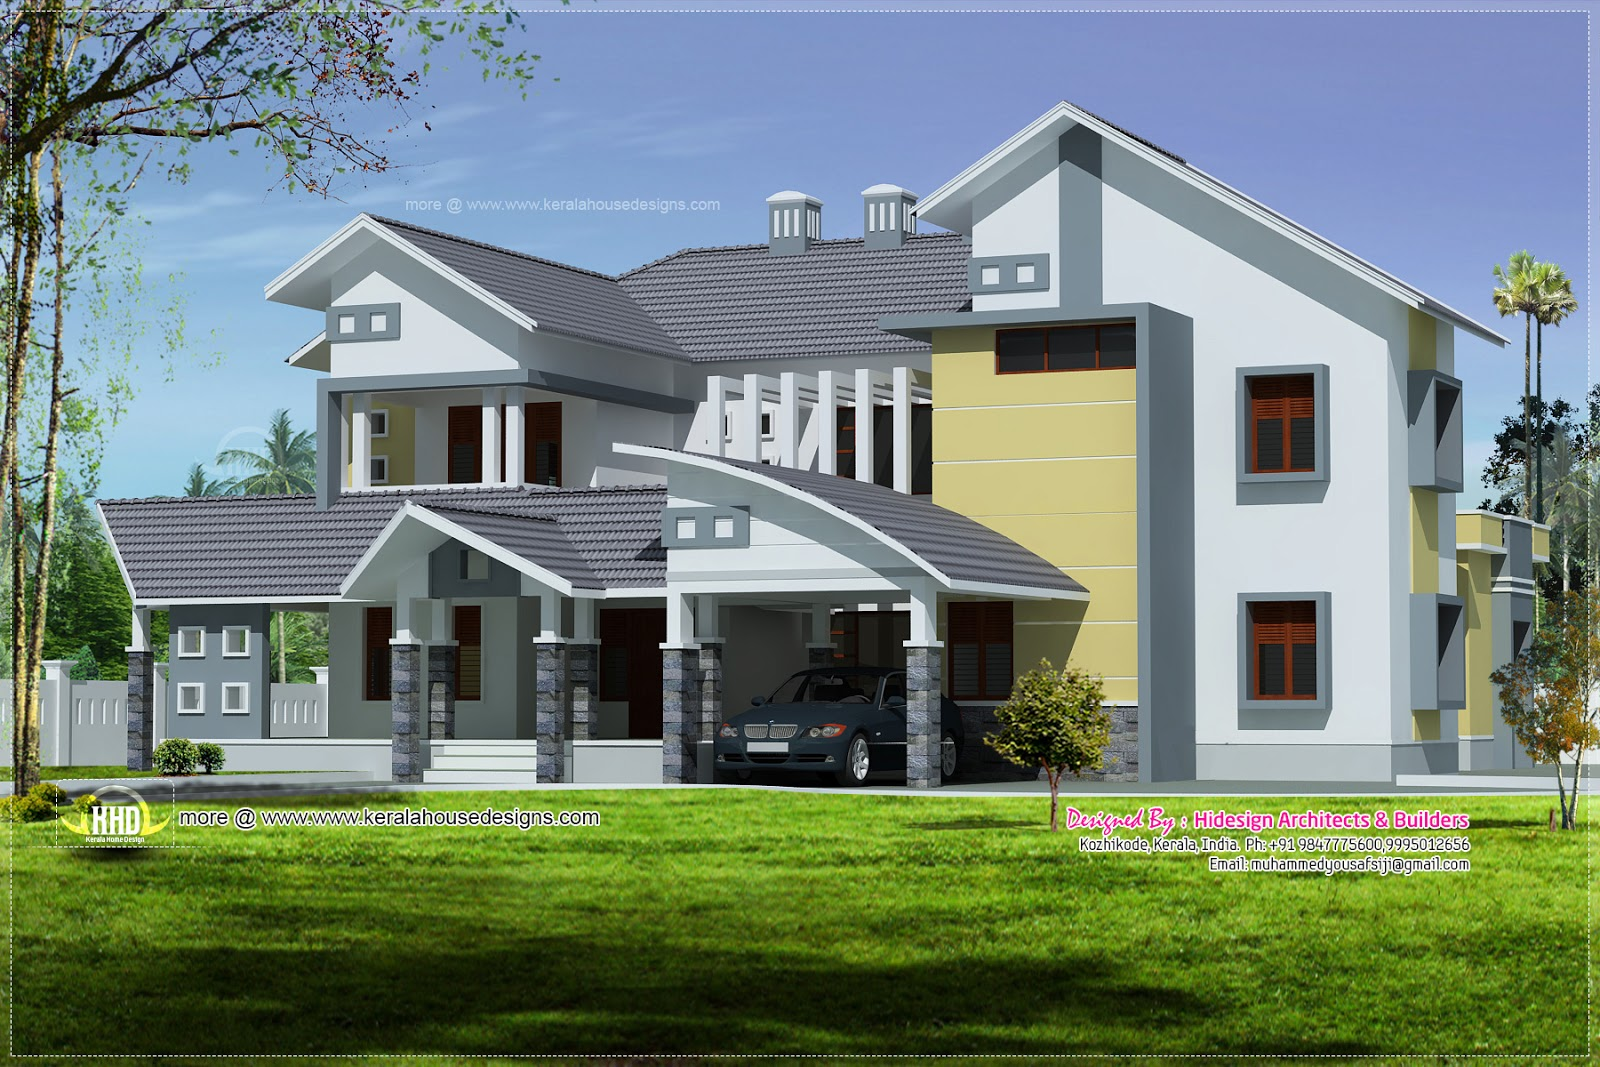 Modern mix luxury home exterior design kerala home design and floor plans - Kerala exterior model homes ...